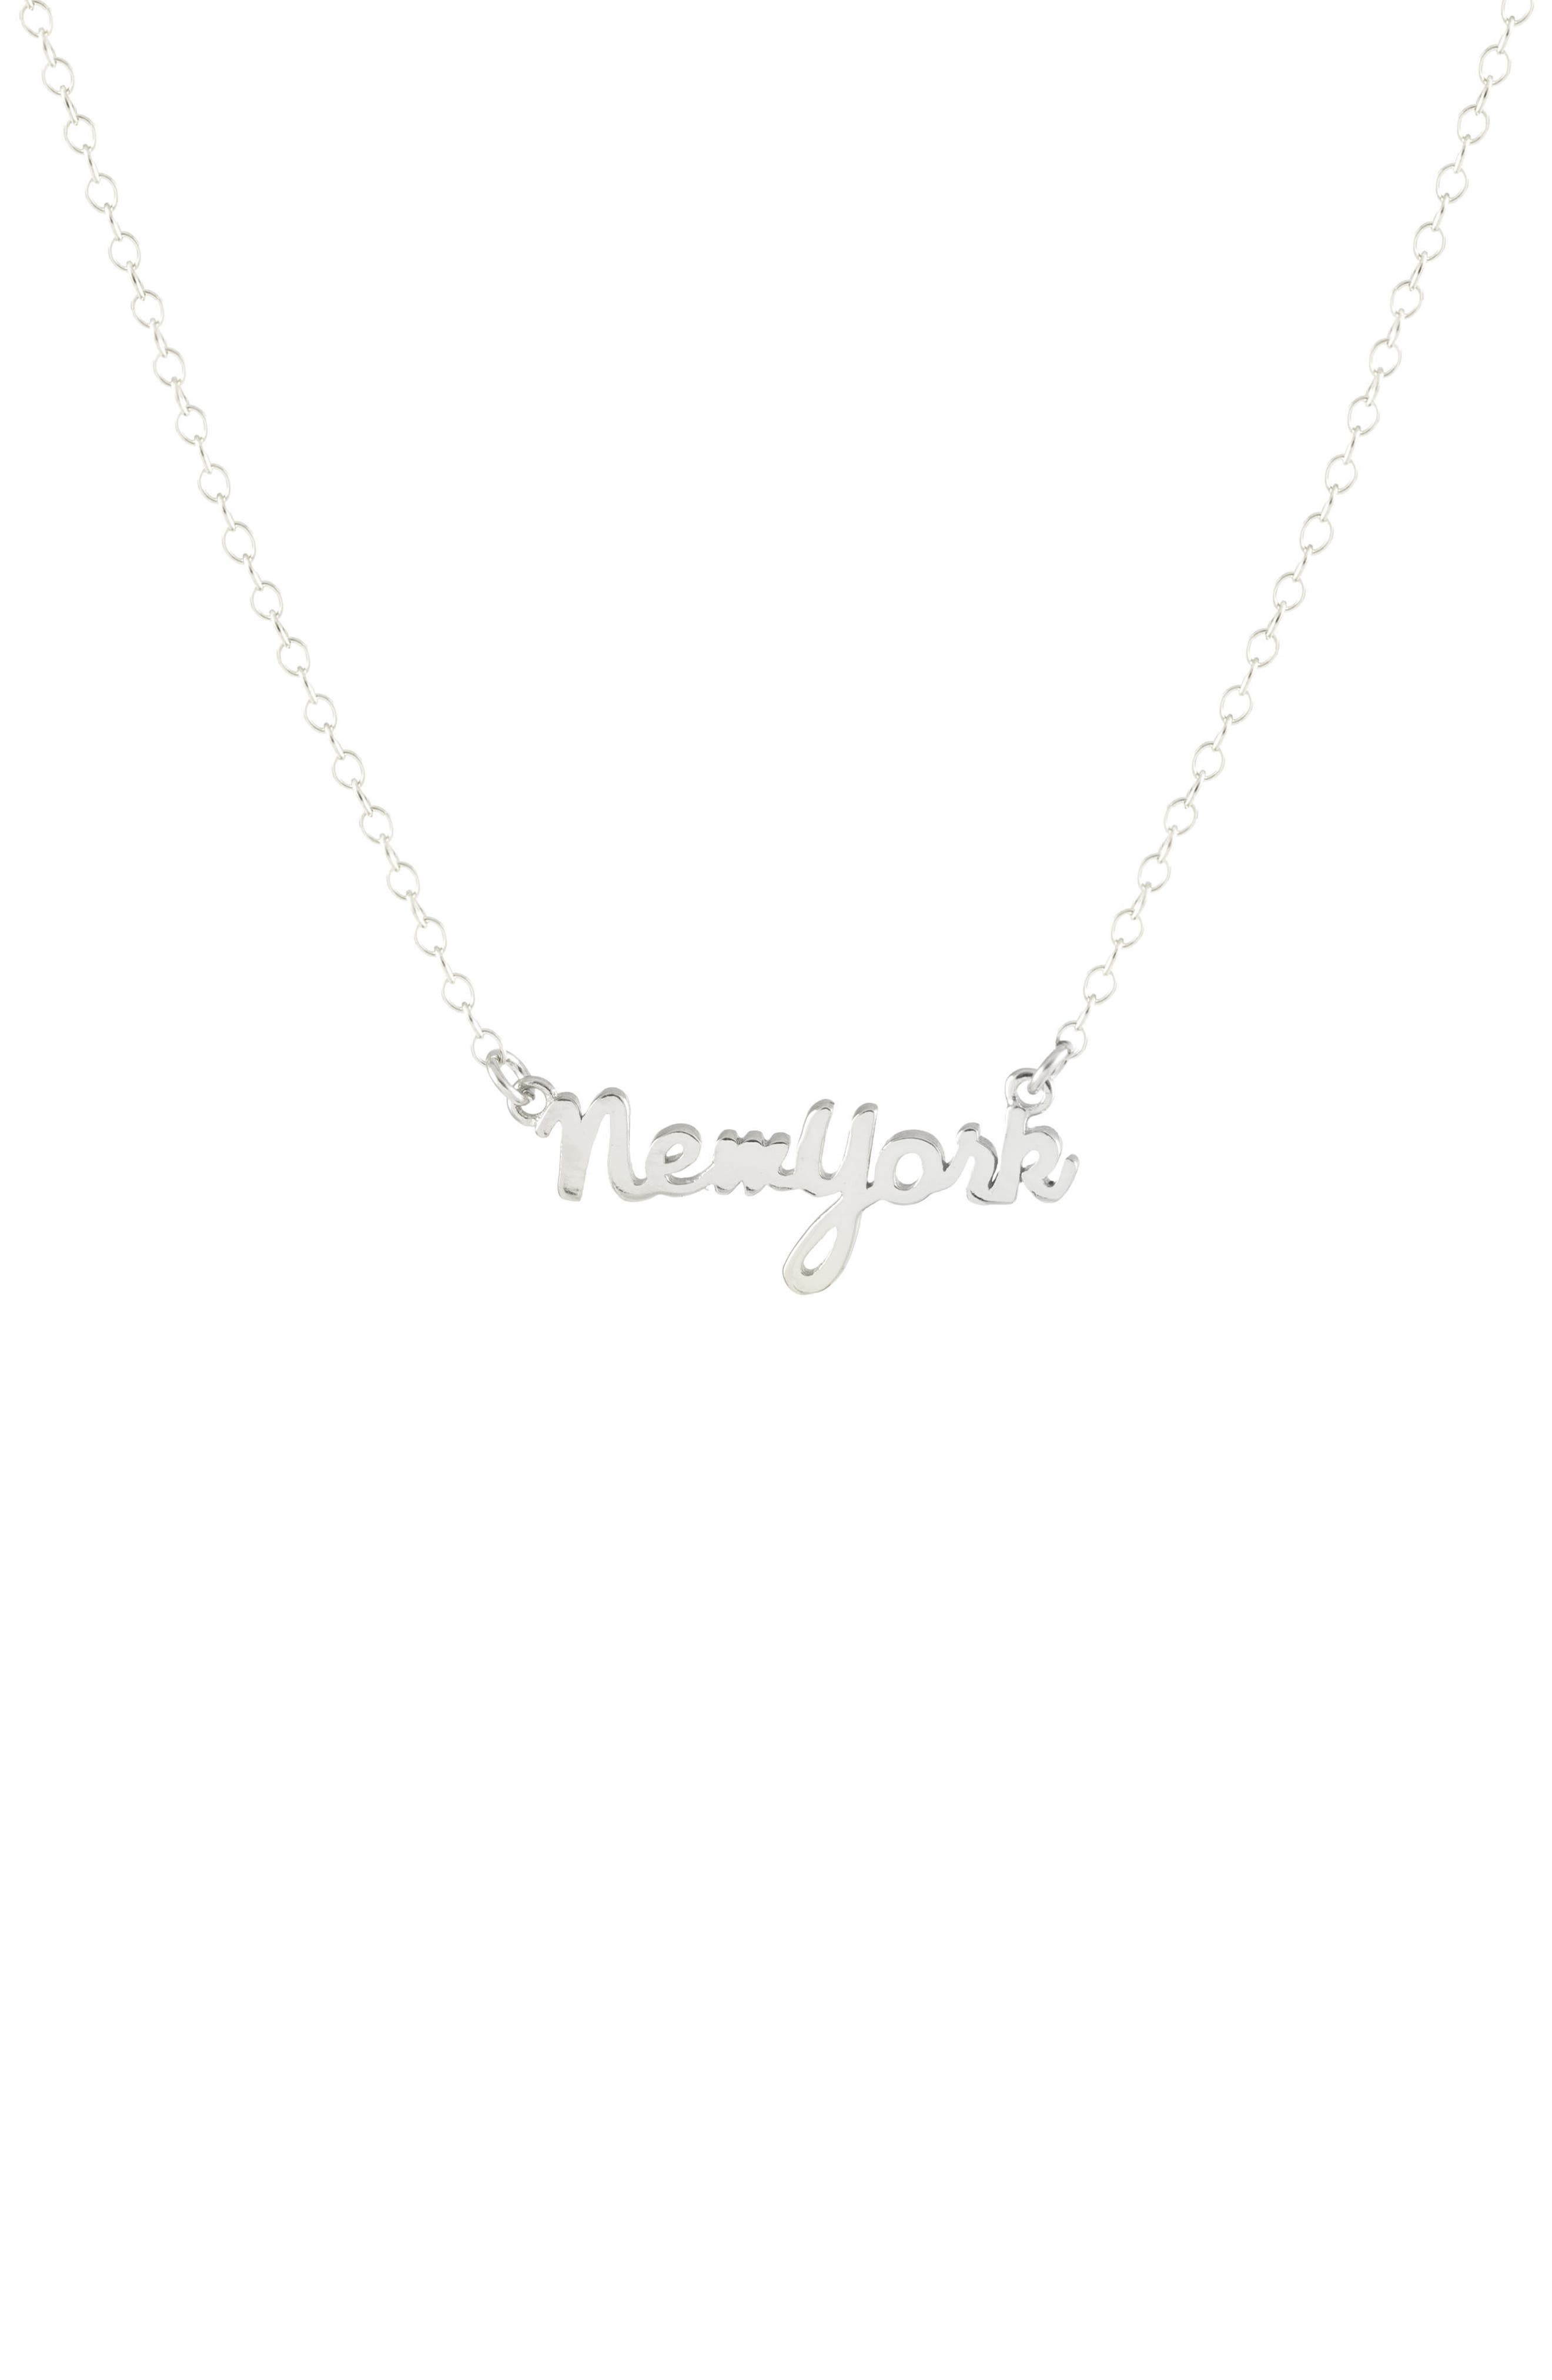 State Script Charm Necklace,                         Main,                         color, New York - Silver